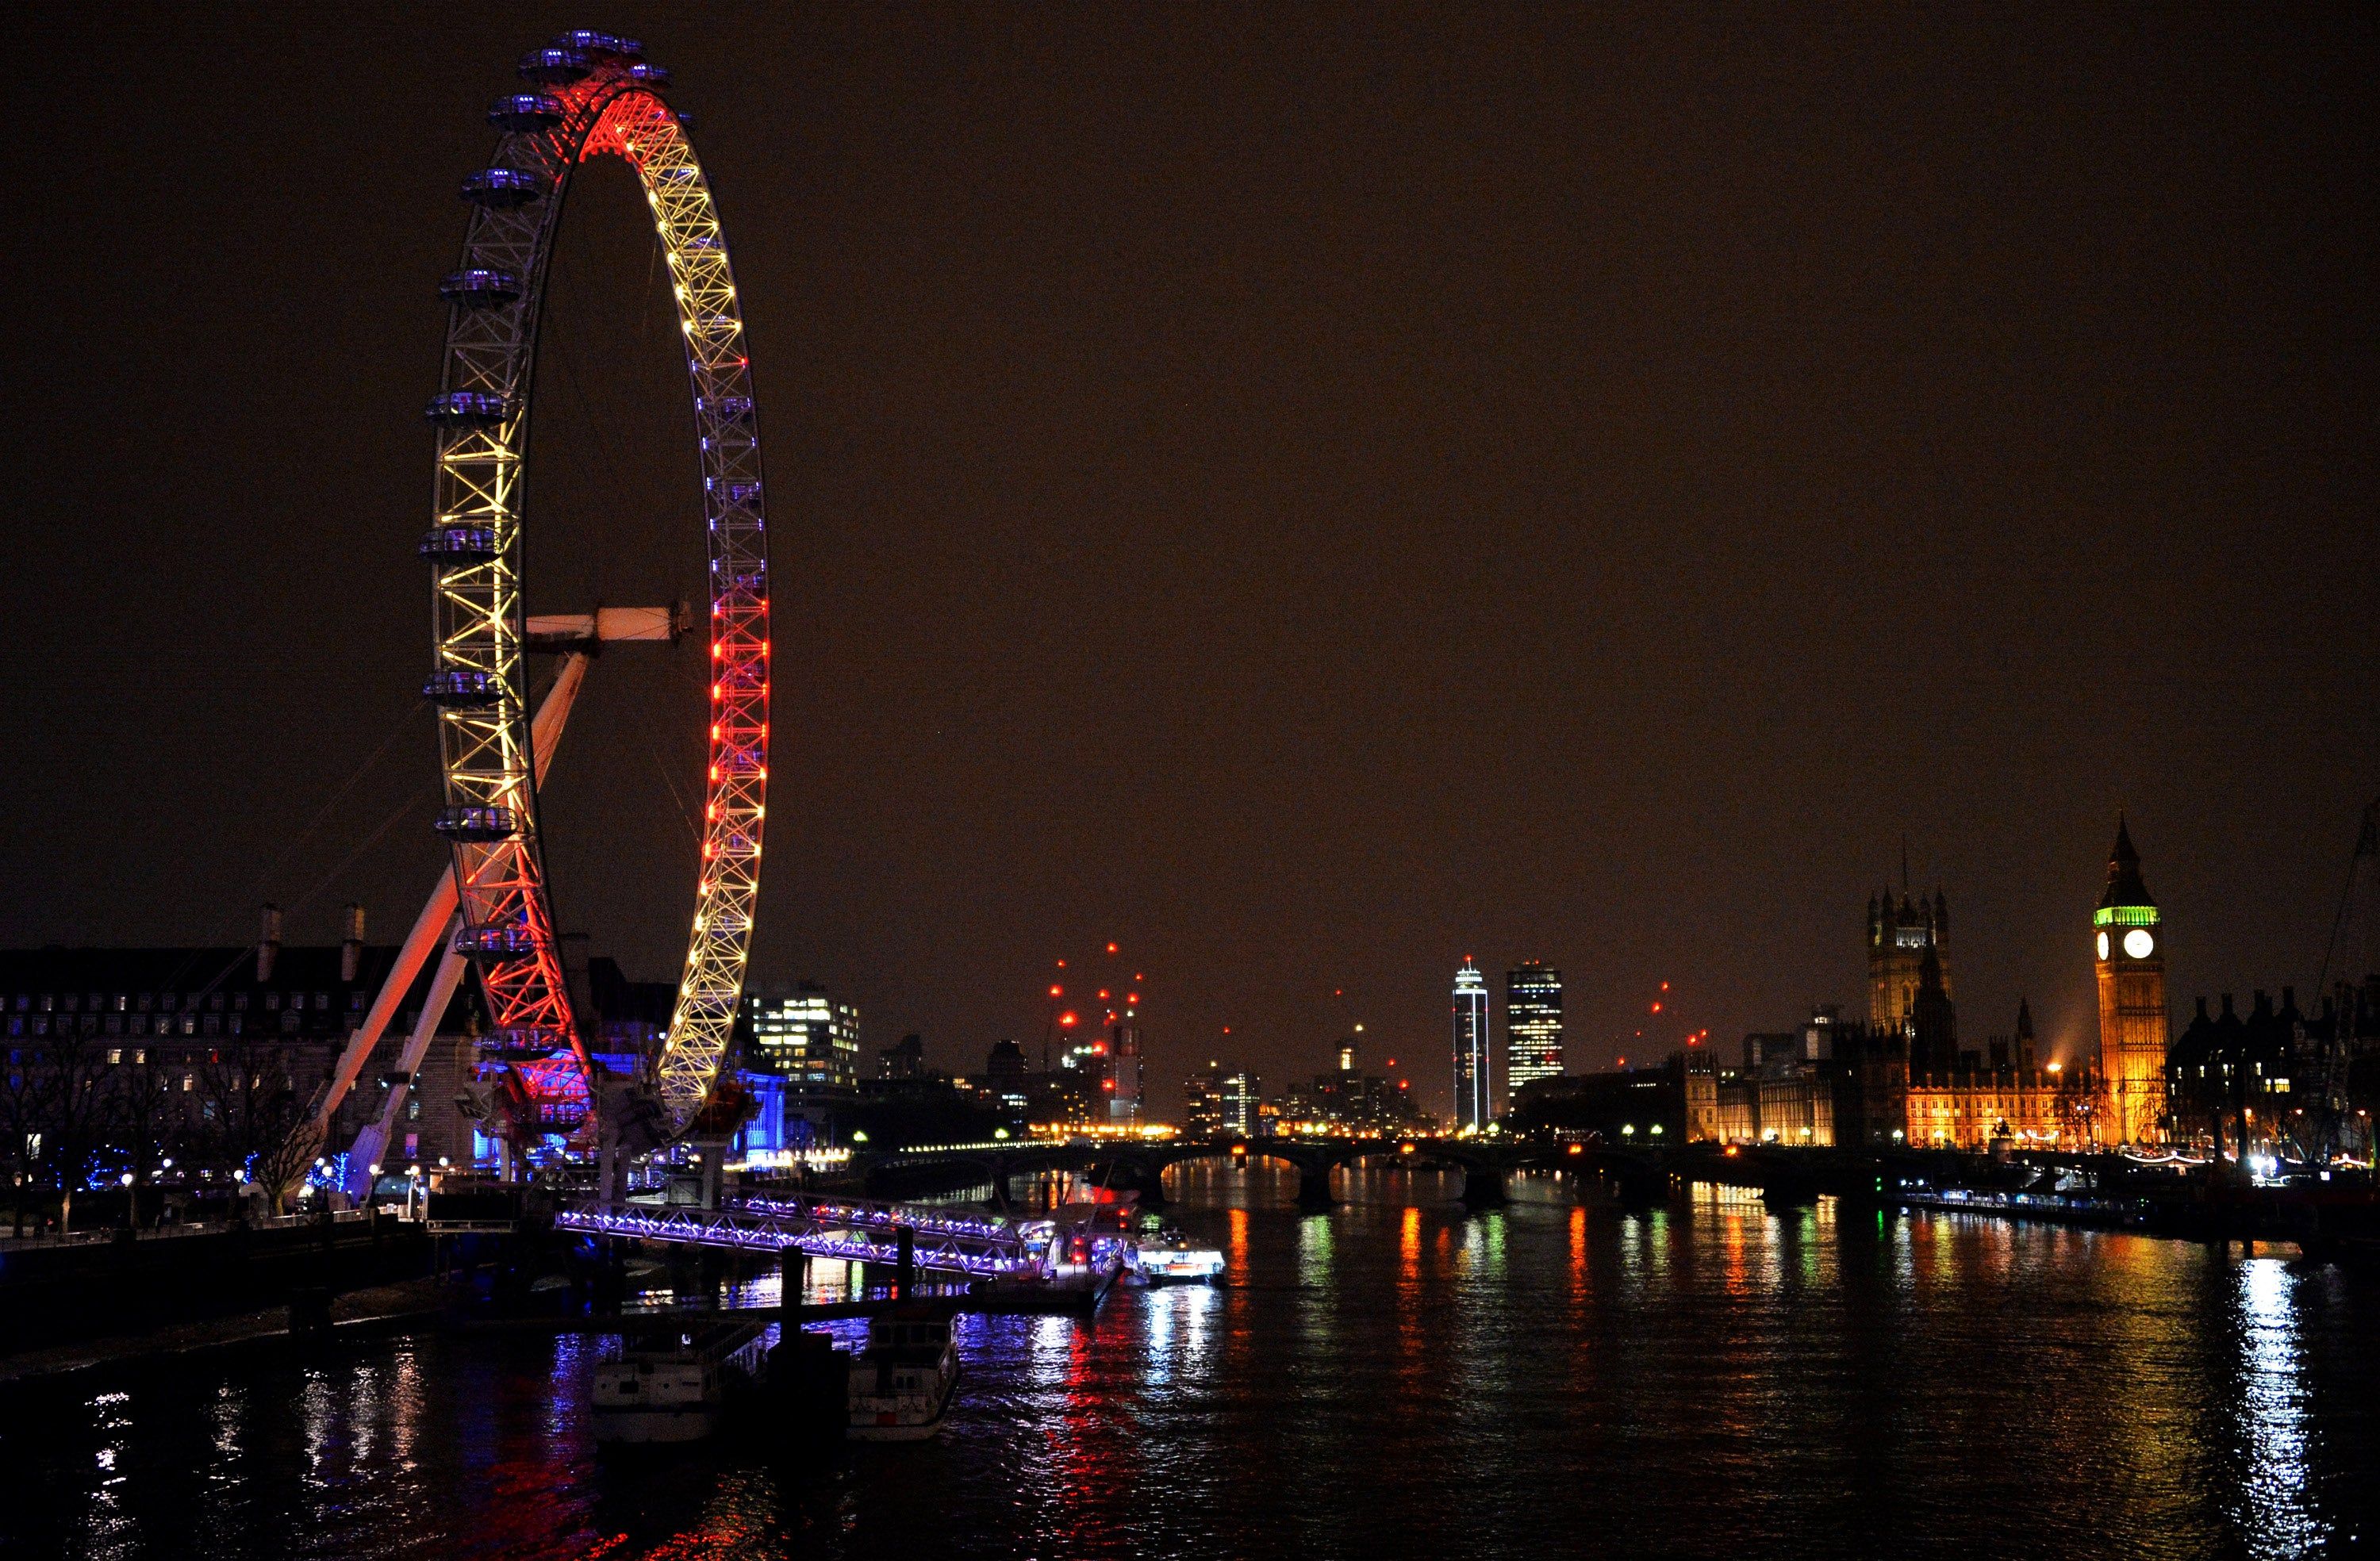 LONDON, ENGLAND - MARCH 23: The London Eye, one of many London landmarks which have been lit up in support of Belgium following the terrorist attacks in Brussels yesterday, on March 23, 2016 in London, England. Belgium is observing three days of national mourning after 34 people were killed in a twin suicide blast at Zaventem Airport and a further bomb attack at Maelbeek Metro Station. Two brothers are thought to have carried out the airport attack and an international manhunt is underway for a third suspect. The attacks come just days after a key suspect in the Paris attacks, Salah Abdeslam, was captured in Brussels. (Photo by Anthony Harvey/Getty Images)